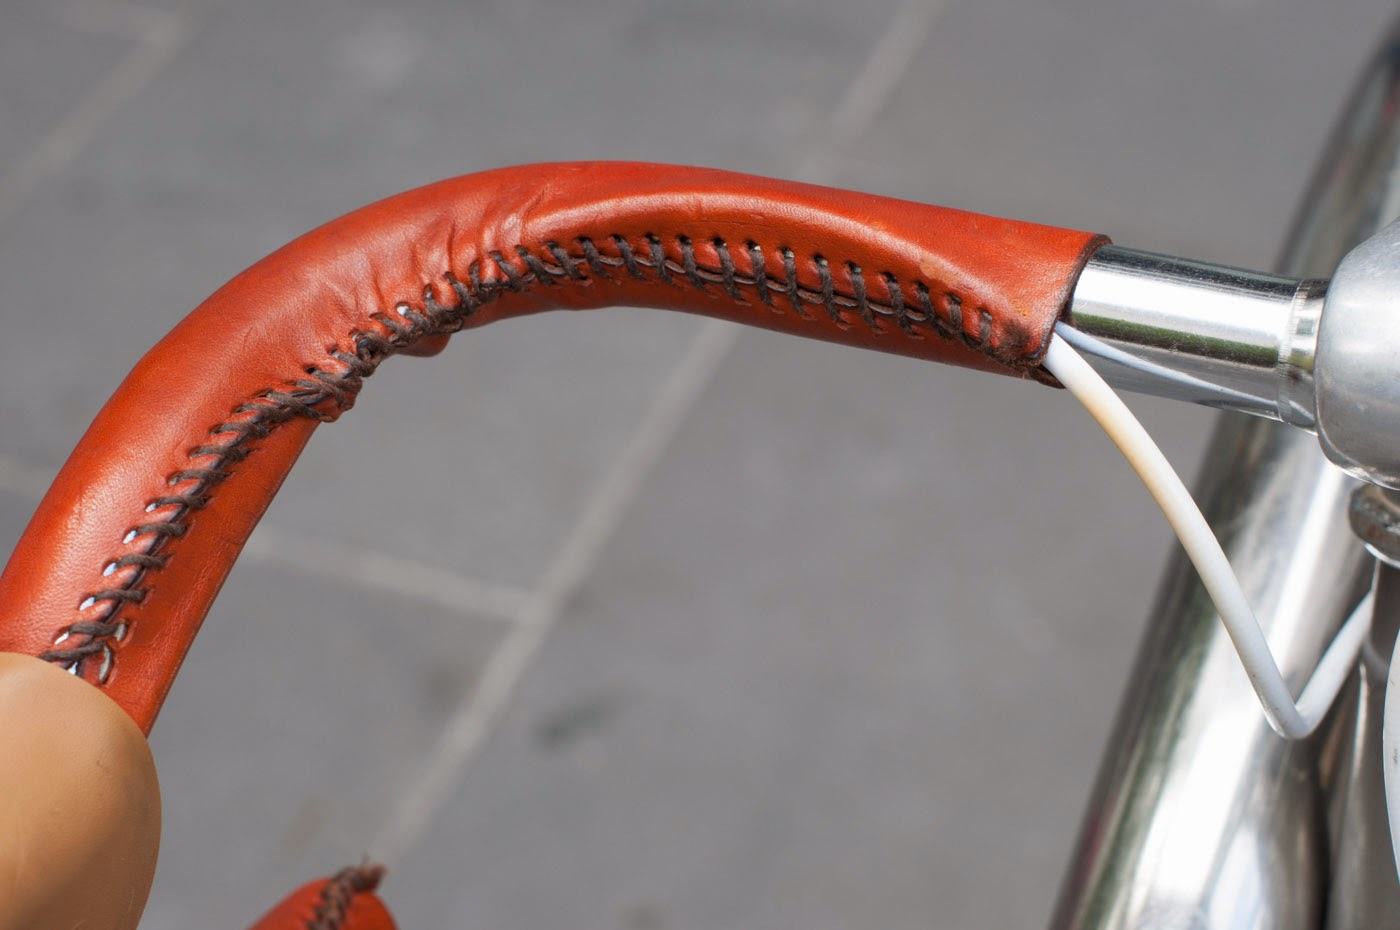 single speed, conversion, road bike, bicycle, Swanston street, Melbourne, Australia, the biketorialist, tim macauley, Macauley, detail, leather, frame, biketorialist, bespoke, custom, customisation, style, bike, bicycle, handlebar, leather, grip